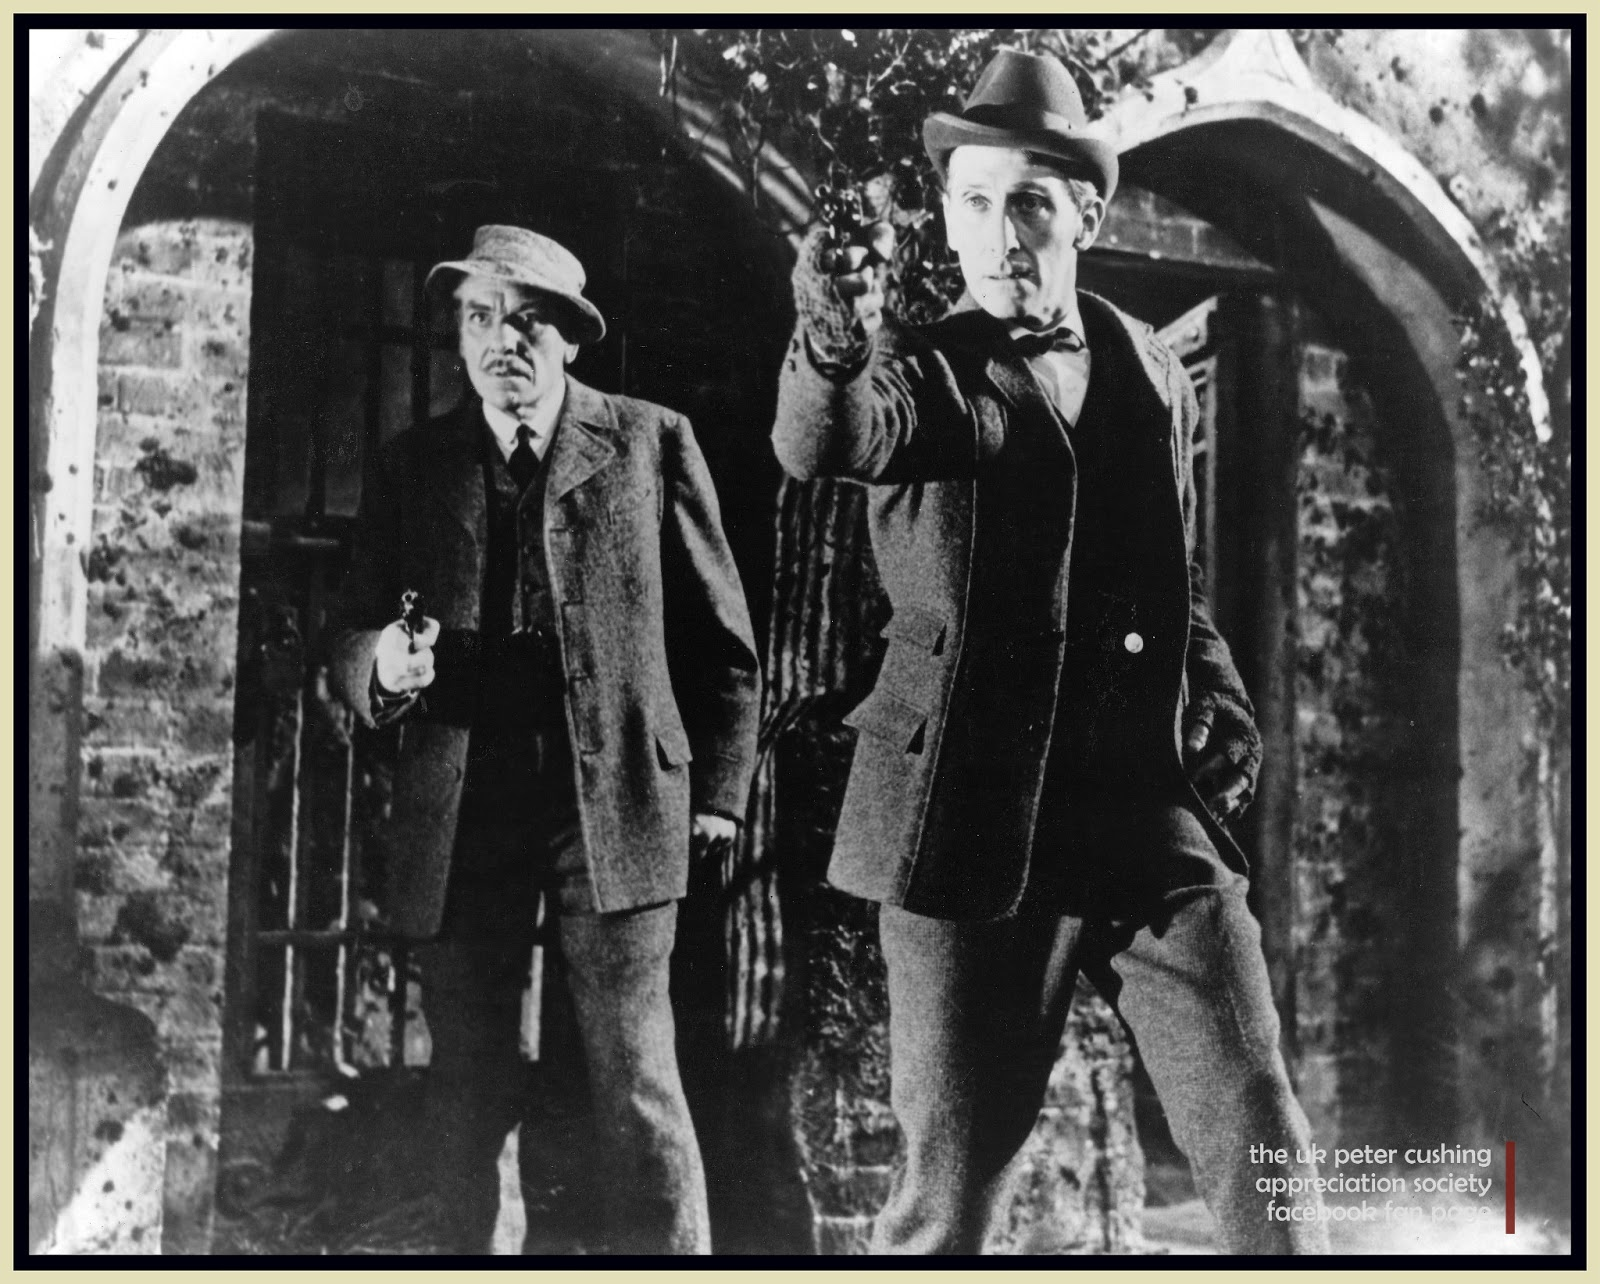 petercushingblog pot com pcasuk andre morell and peter com pcasuk andre morell and peter cushing holmes and watson the hound of the baskervilles stills gallery and review